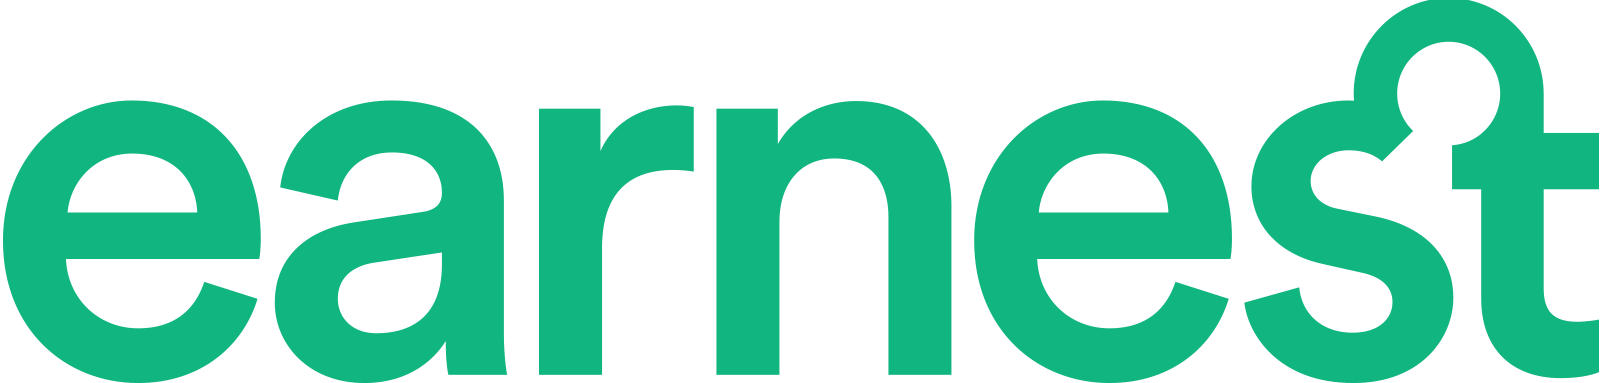 earnest-logo